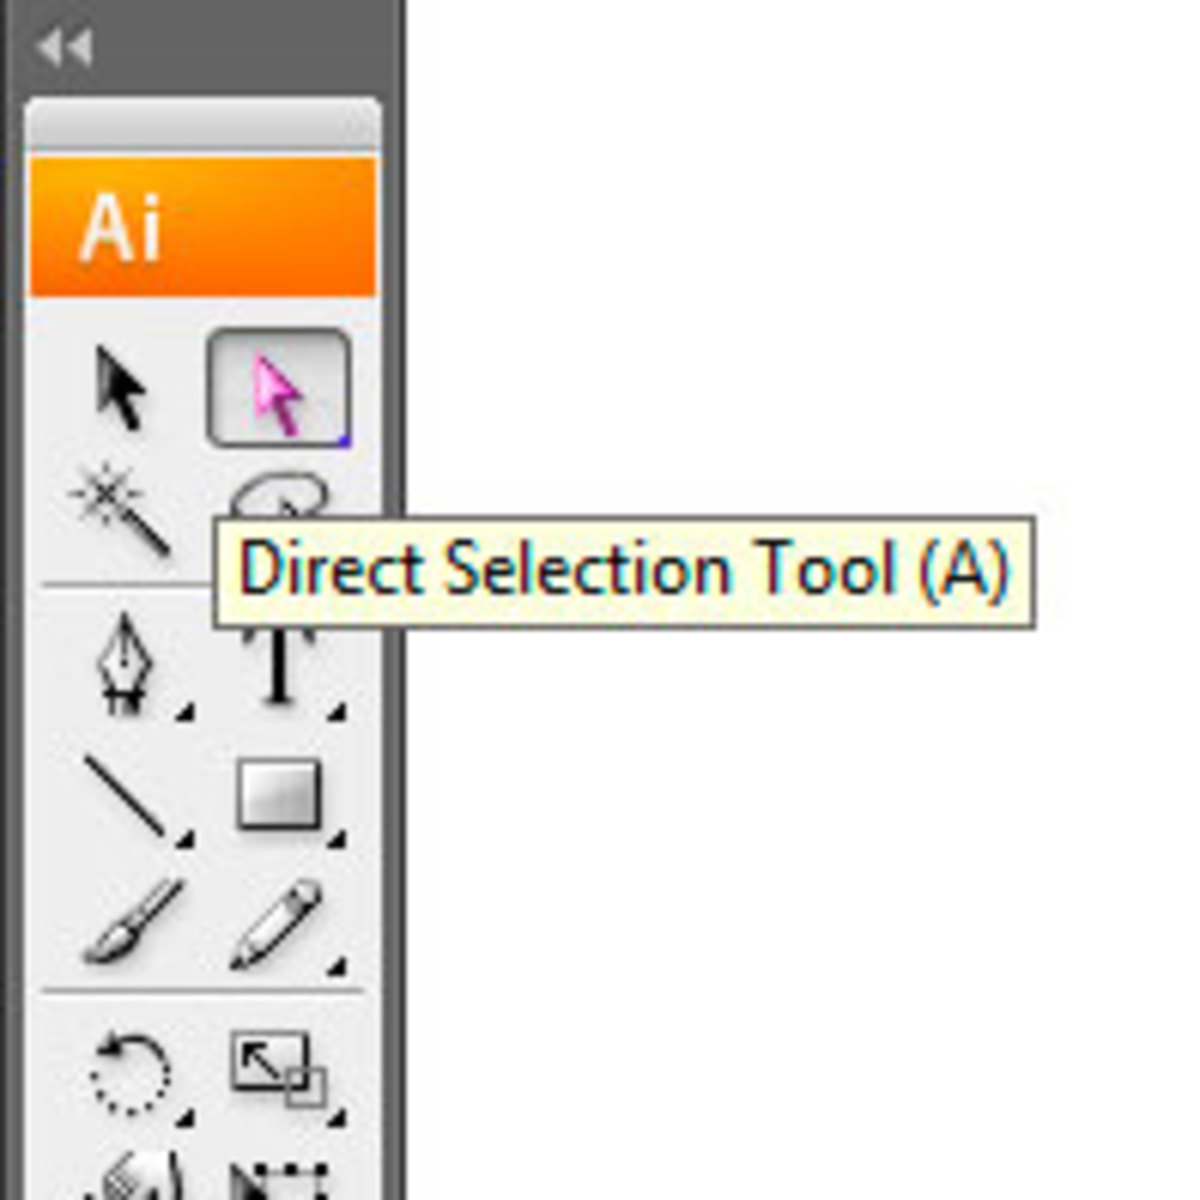 Click on The Direct Selection Tool